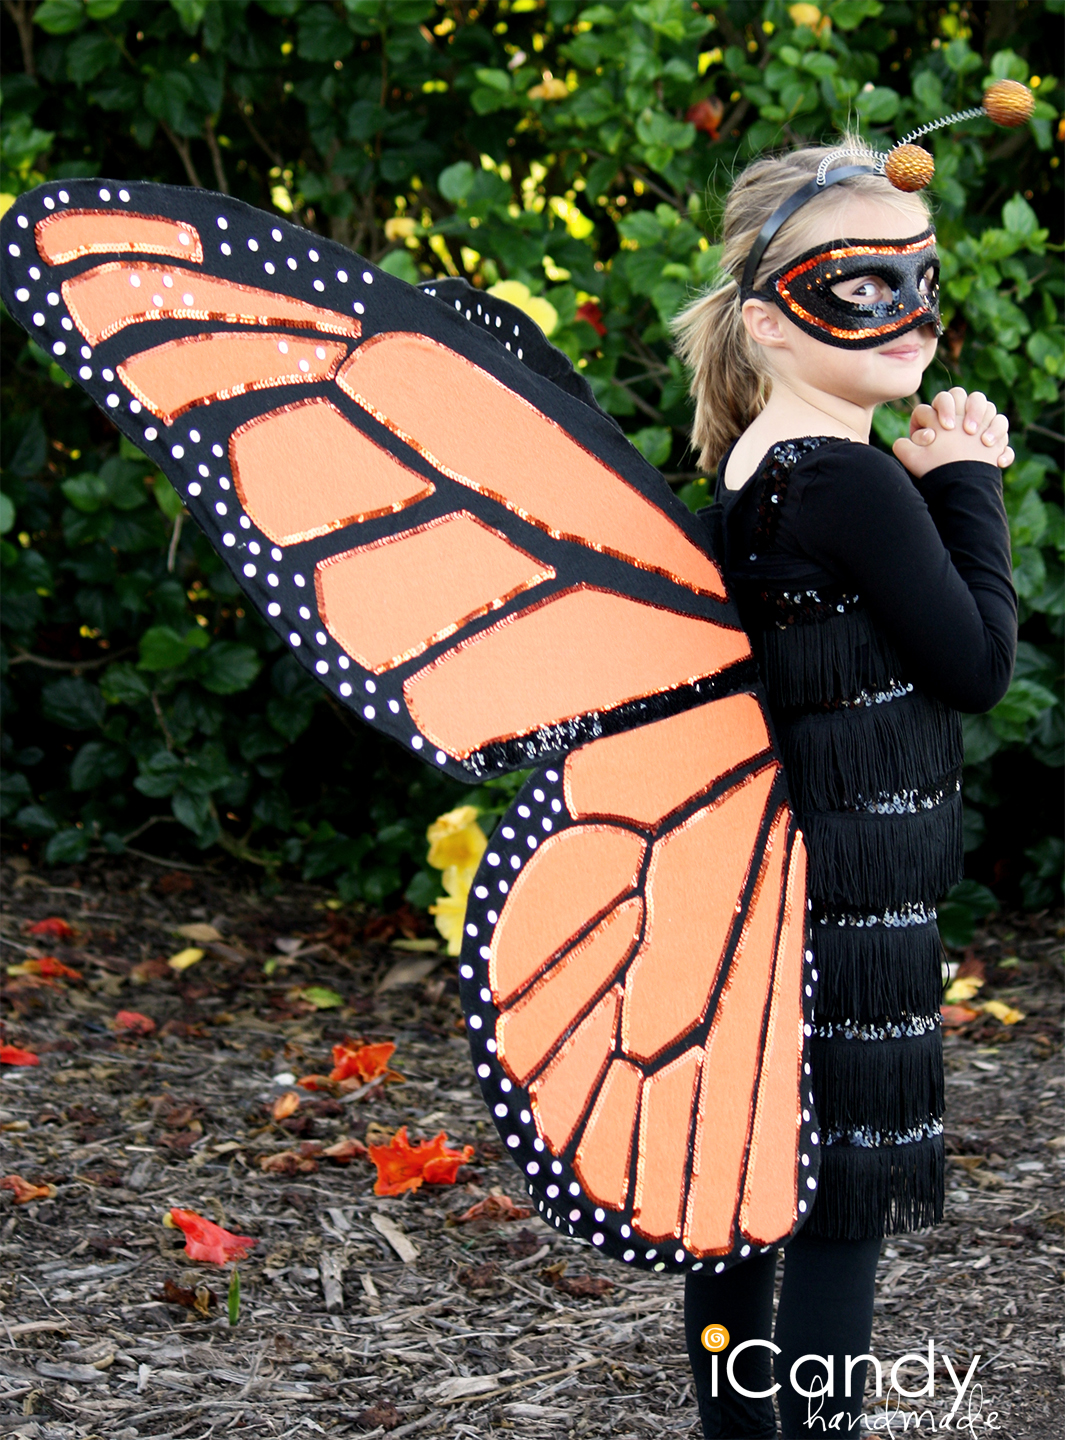 How to make butterfly costume wings - photo#13